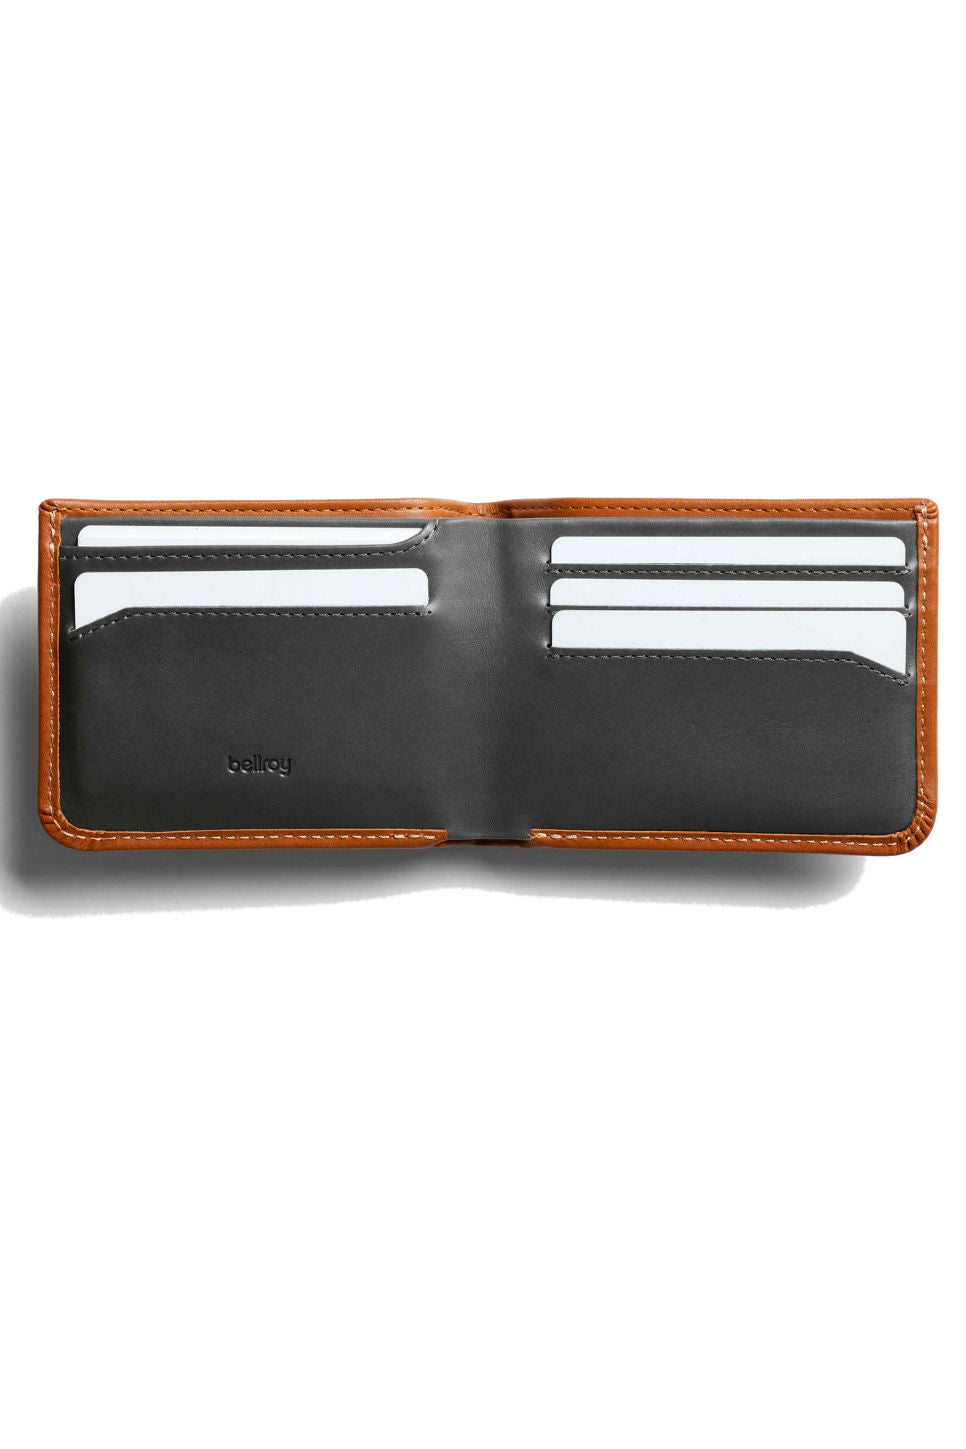 Bellroy - Hide & Seek Wallet - Caramel - Inside